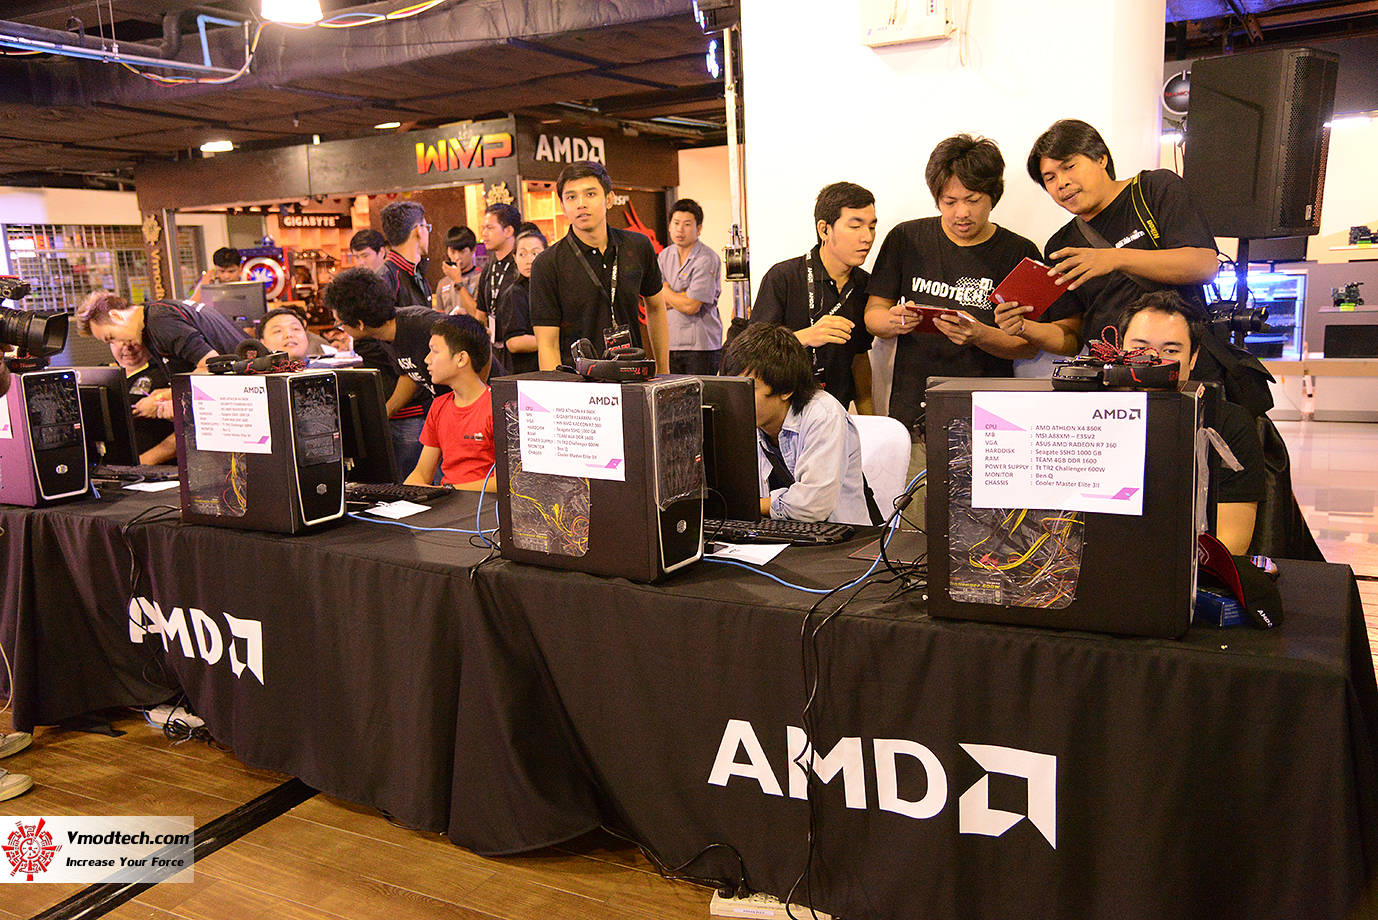 dsc 6621 AMD OMG! Party 2015 (AMD Overclock Modding Gaming Party 2015)